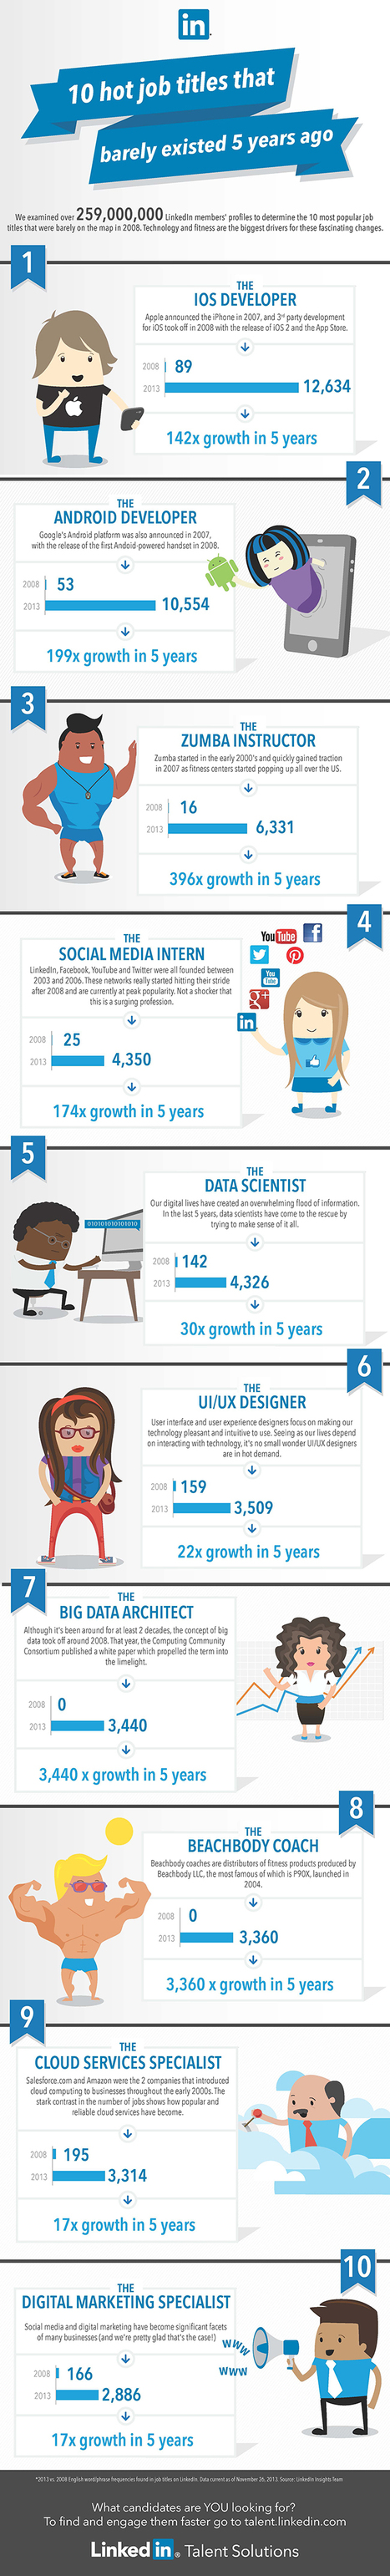 Jobs That Didn't Exist 5 Years Ago ( #Infographic) | Future of Cloud Computing and IoT | Scoop.it